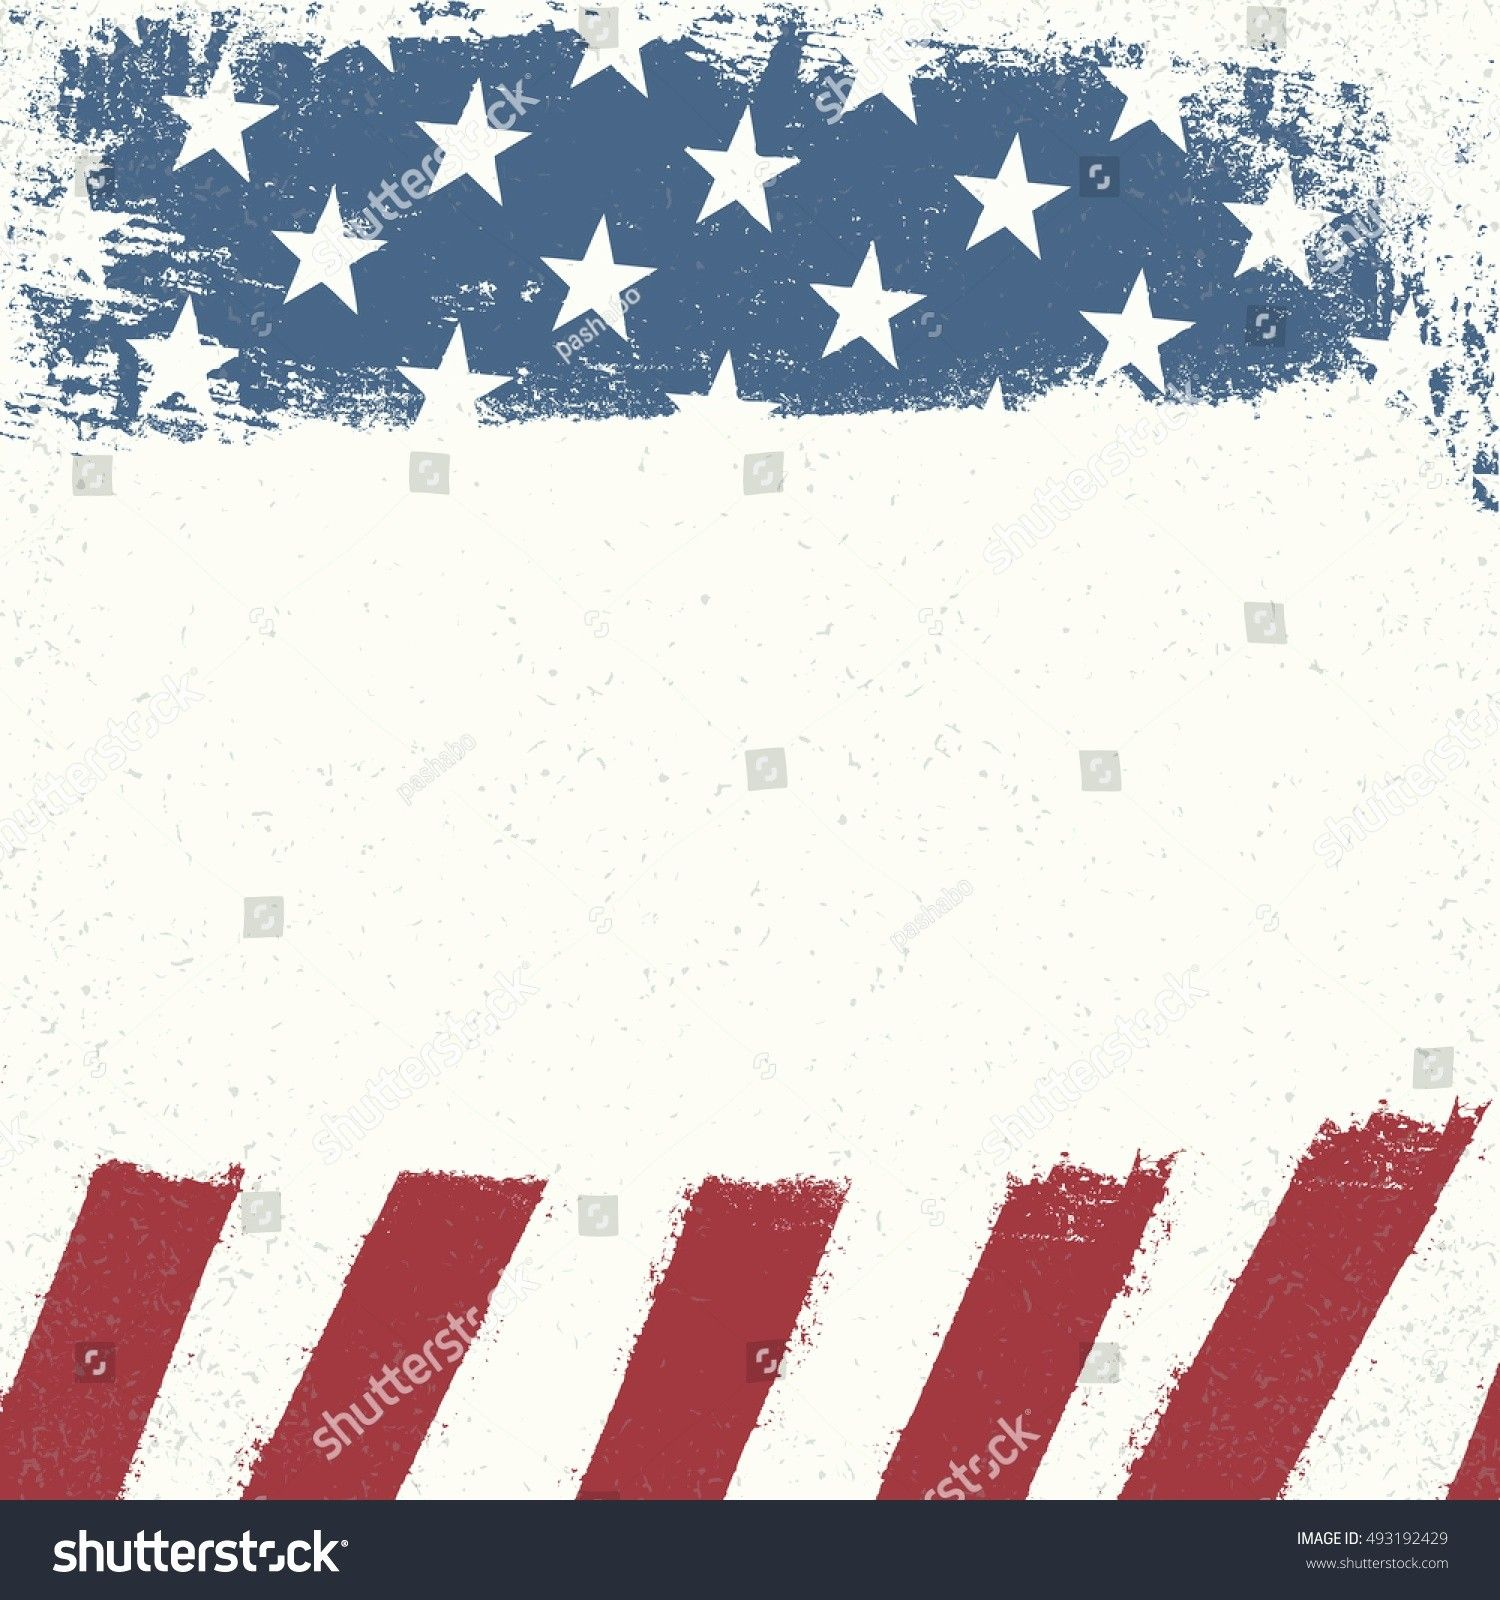 Patriotic Powerpoint Template Awesome Usa Powerpoint Inside Patriotic Powerpoint Template